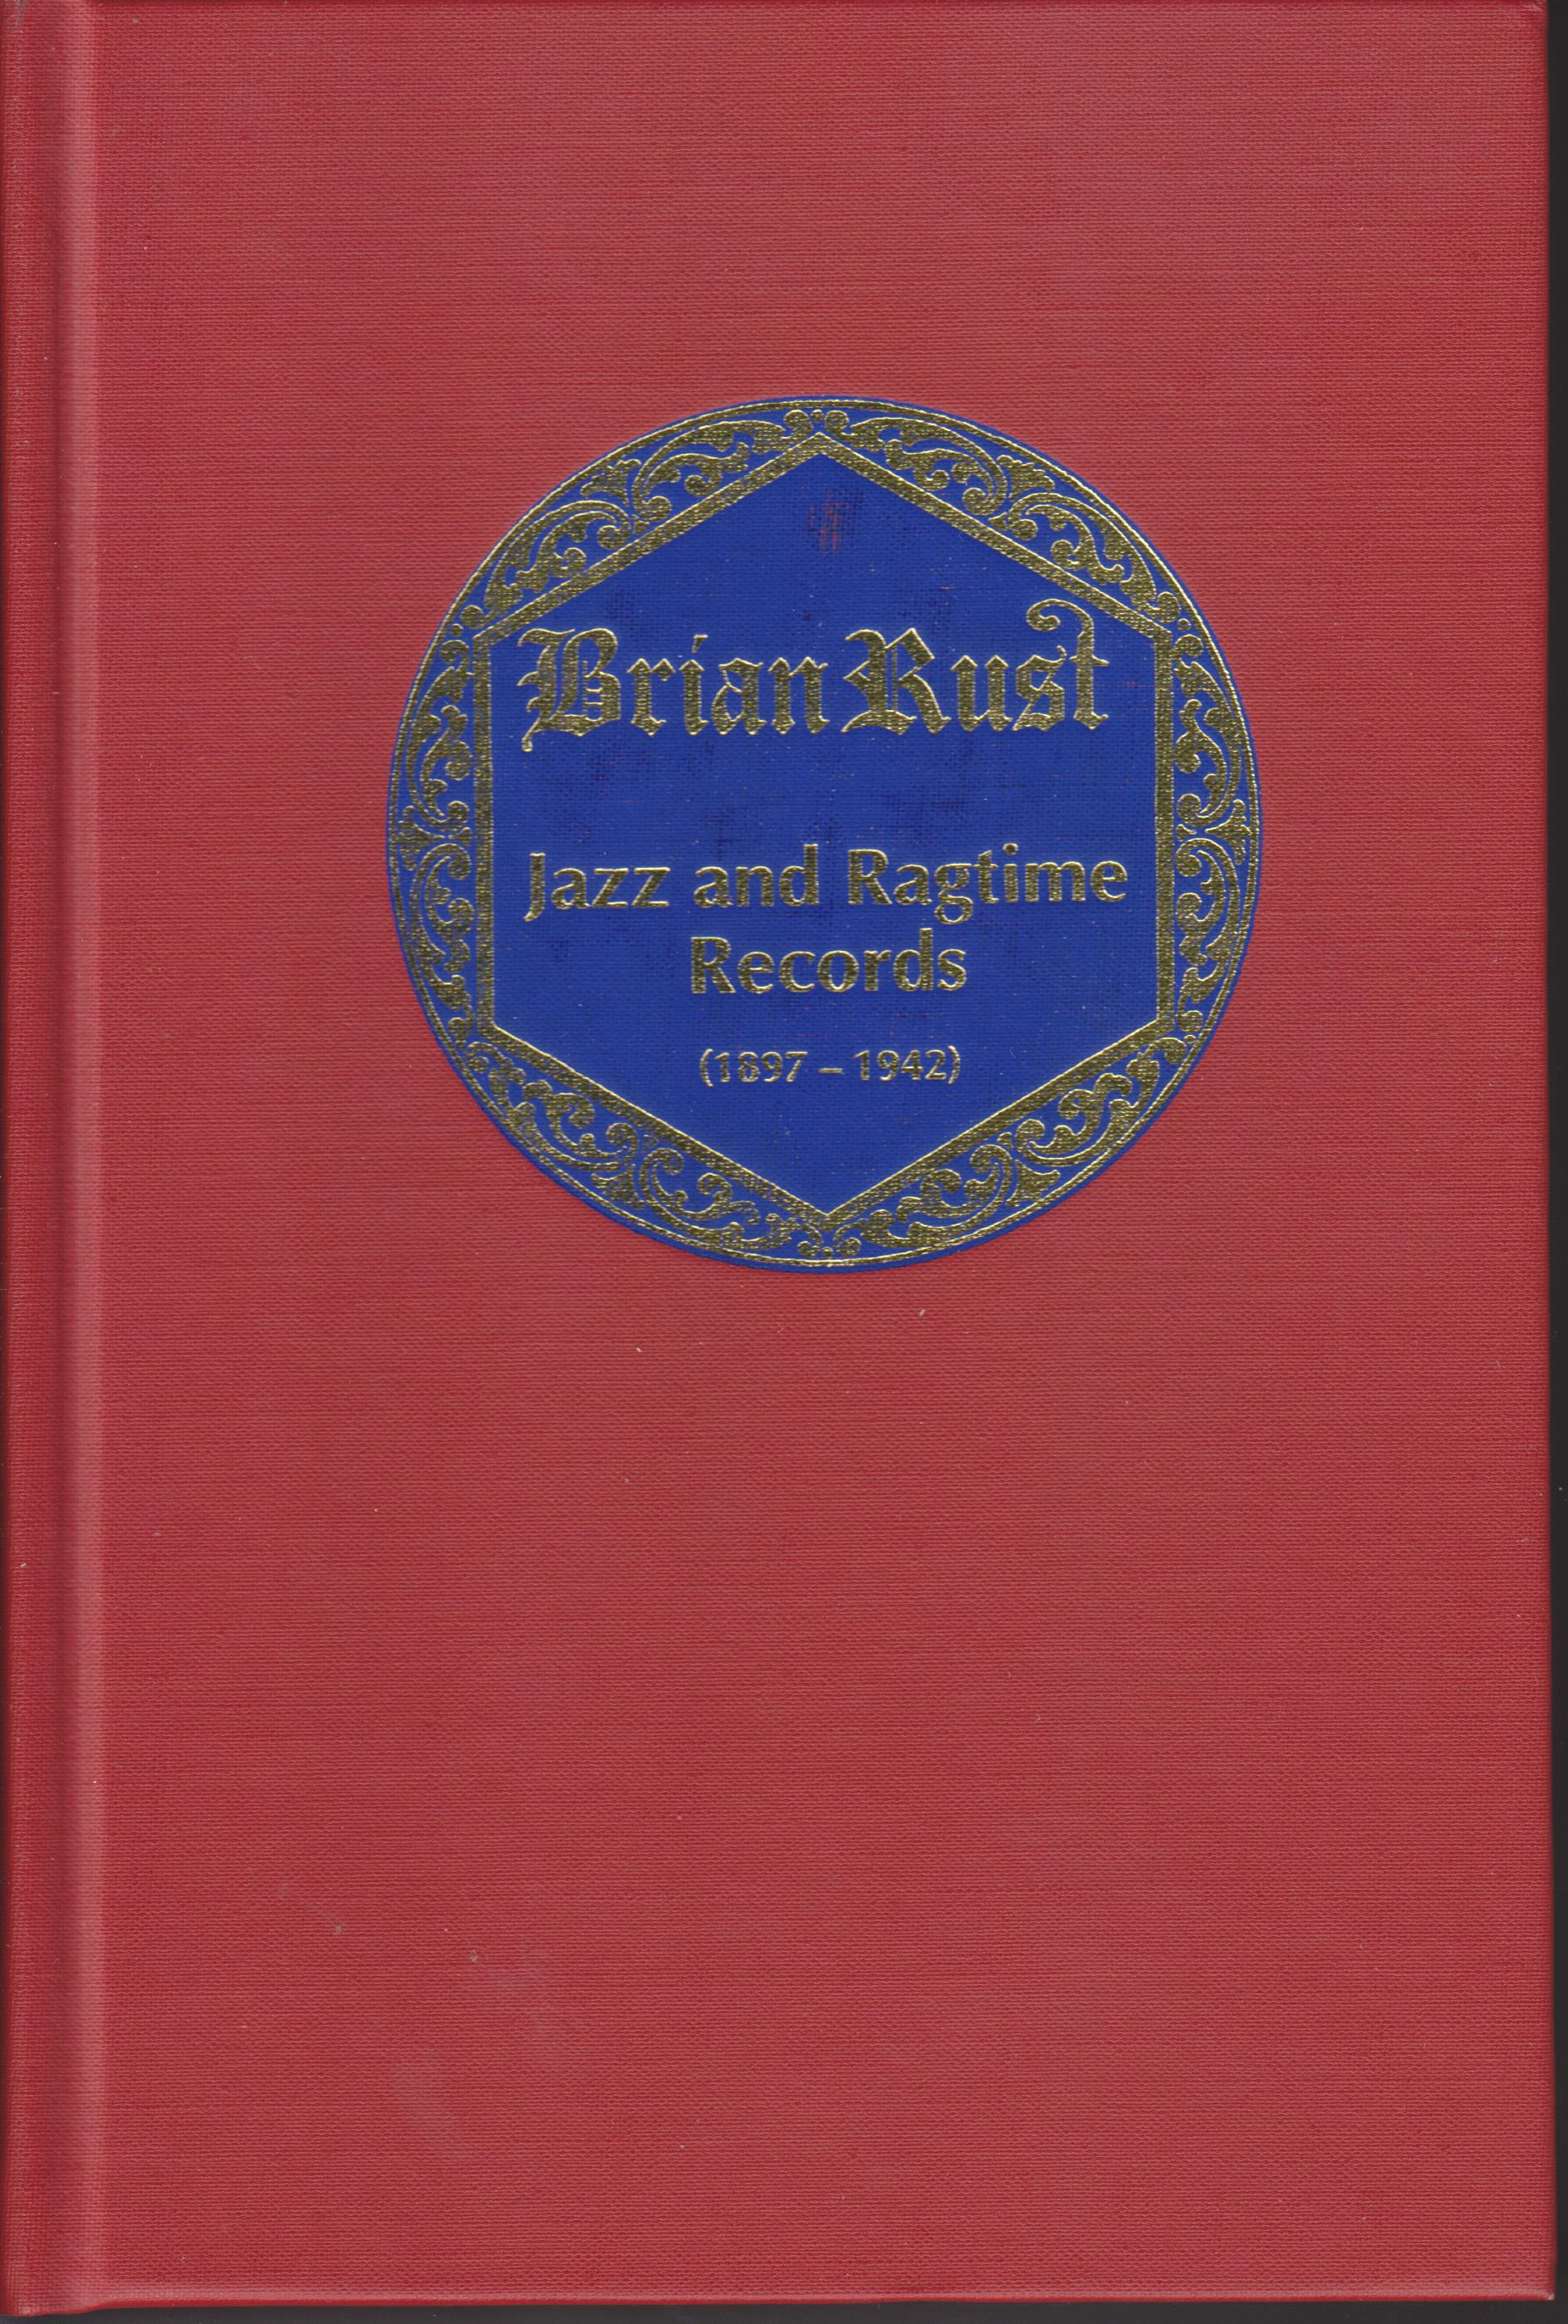 Image for Jazz and Ragtime Records 1897-1942 3 vols (includes index volume)